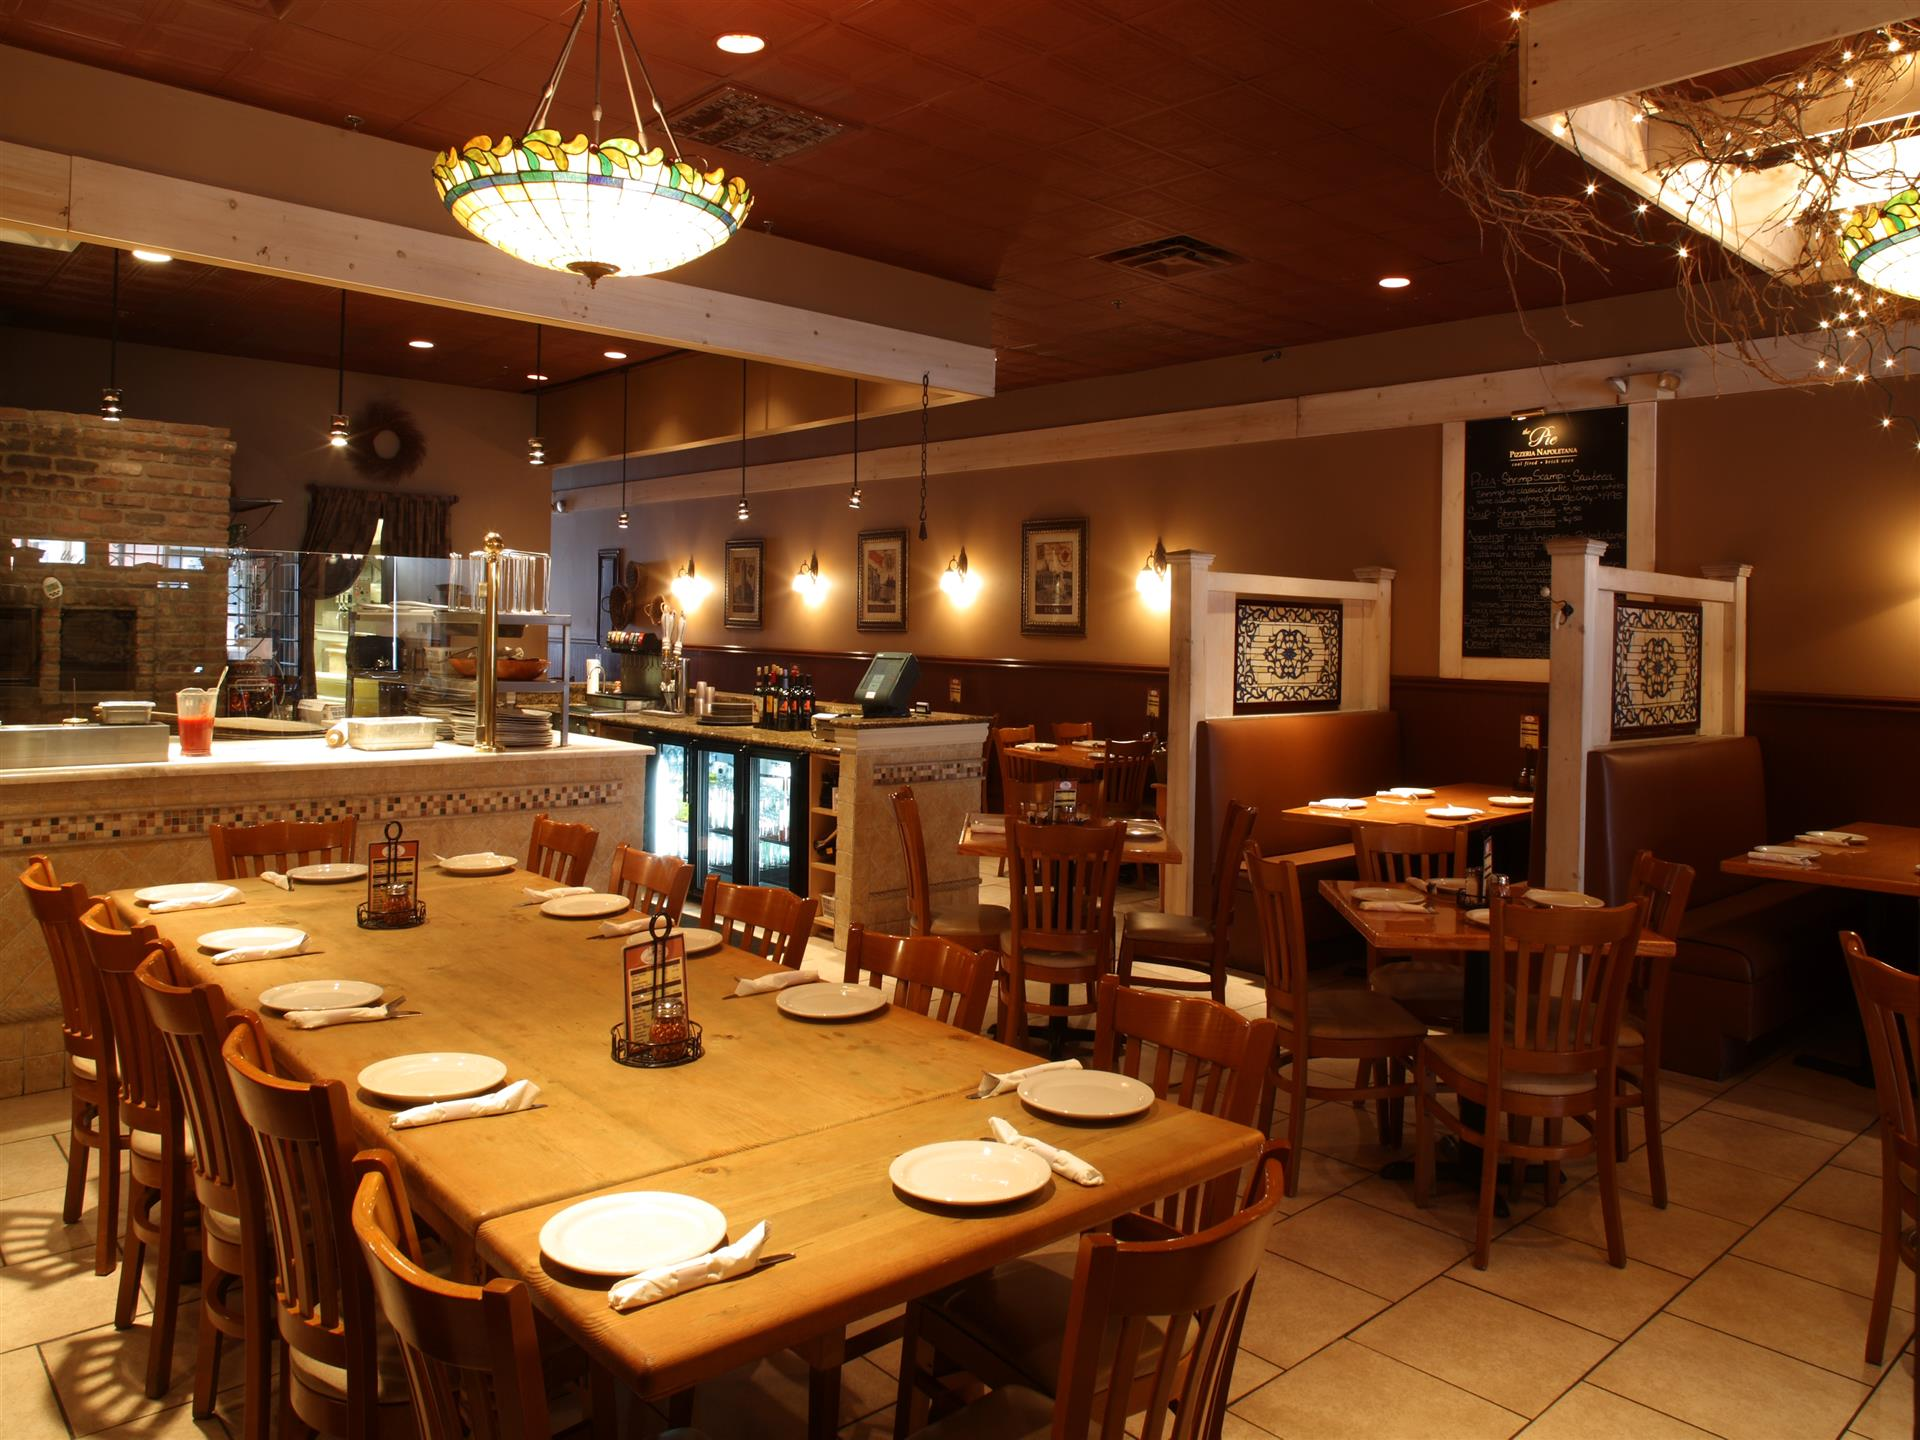 interior of restaurant with tables and booths set for service